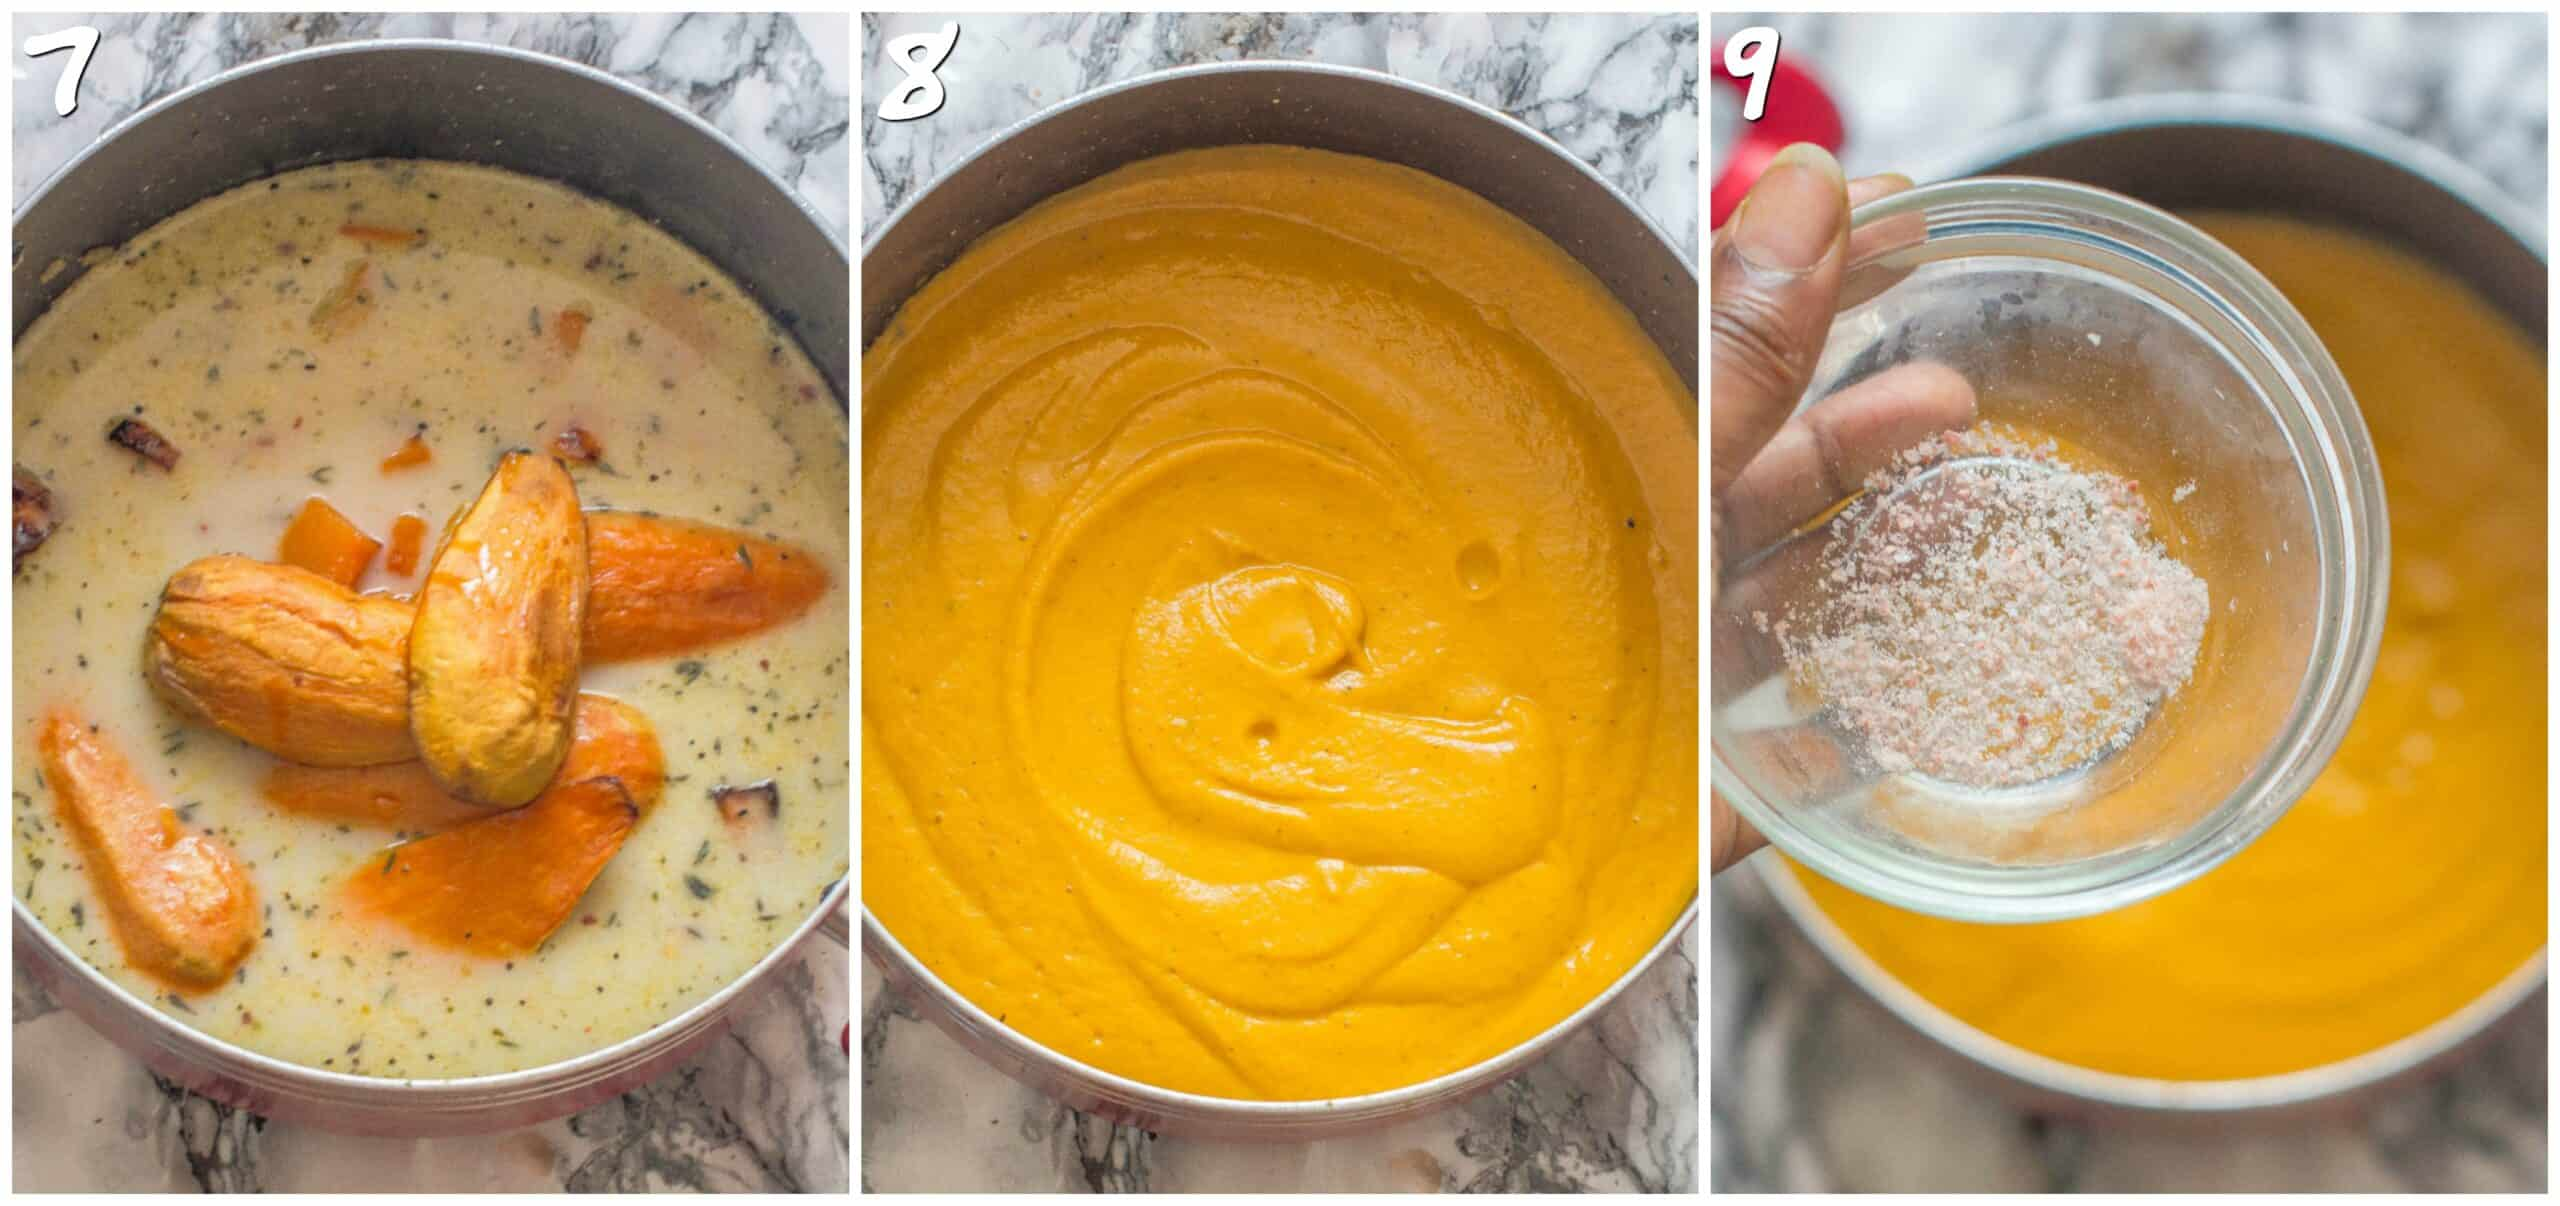 steps 7-9 pureeing the vegetables into soup